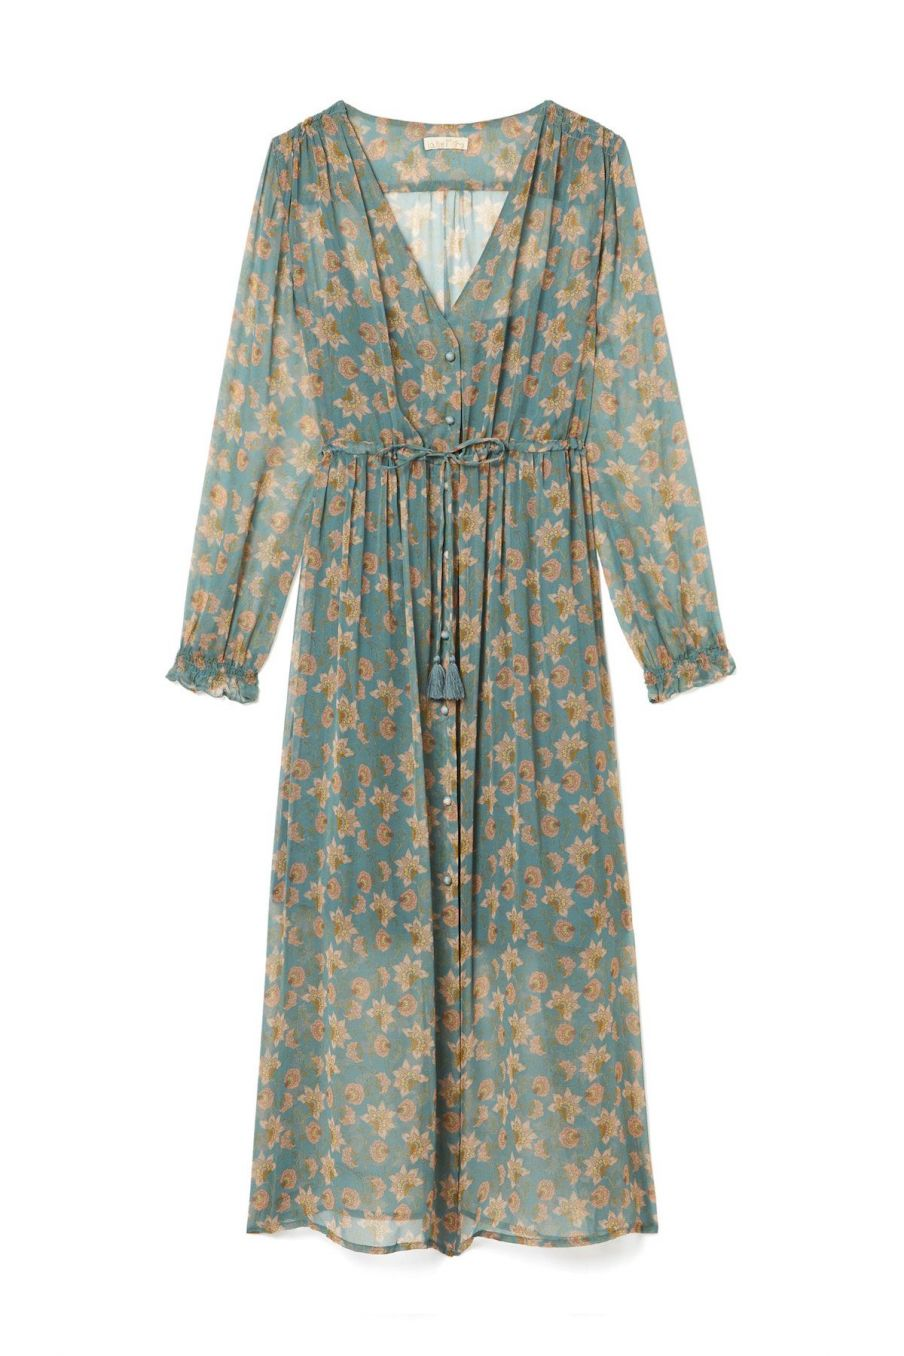 boheme chic vintage robe femme chally storm flowers